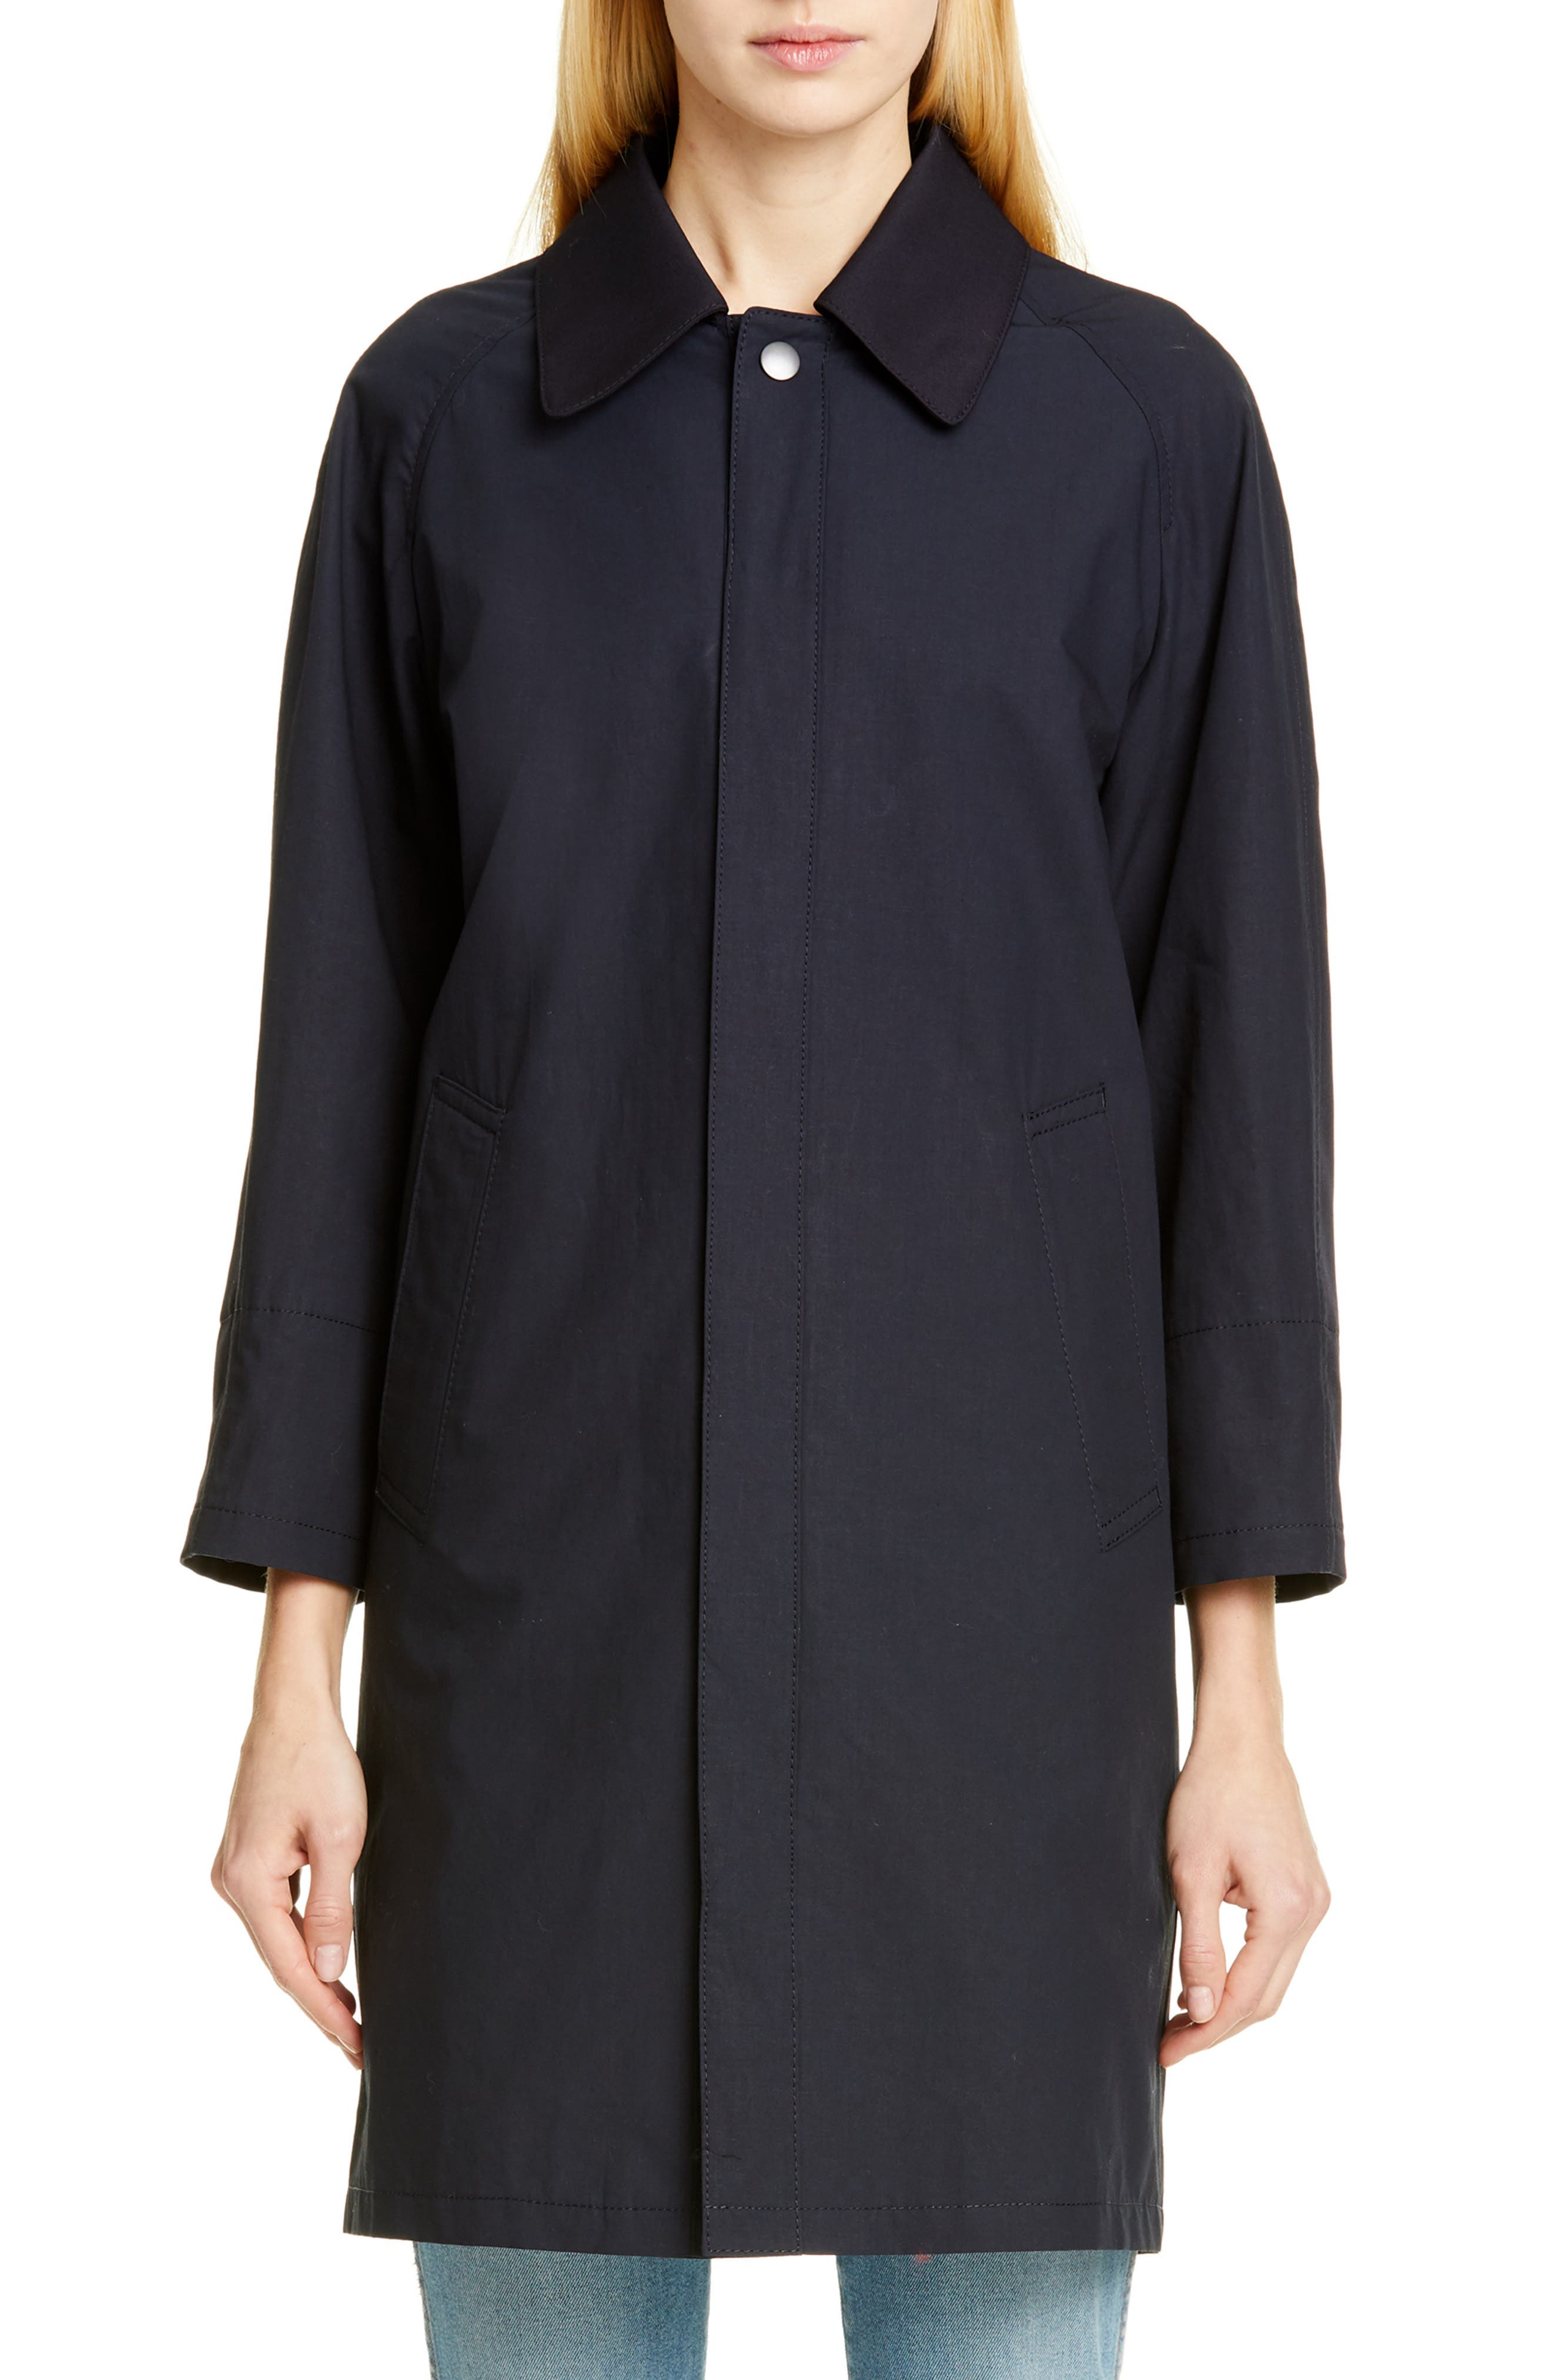 TRICOT COMME DES GARÇONS Wool Cab Coat with Print Lining, Main, color, NAVY